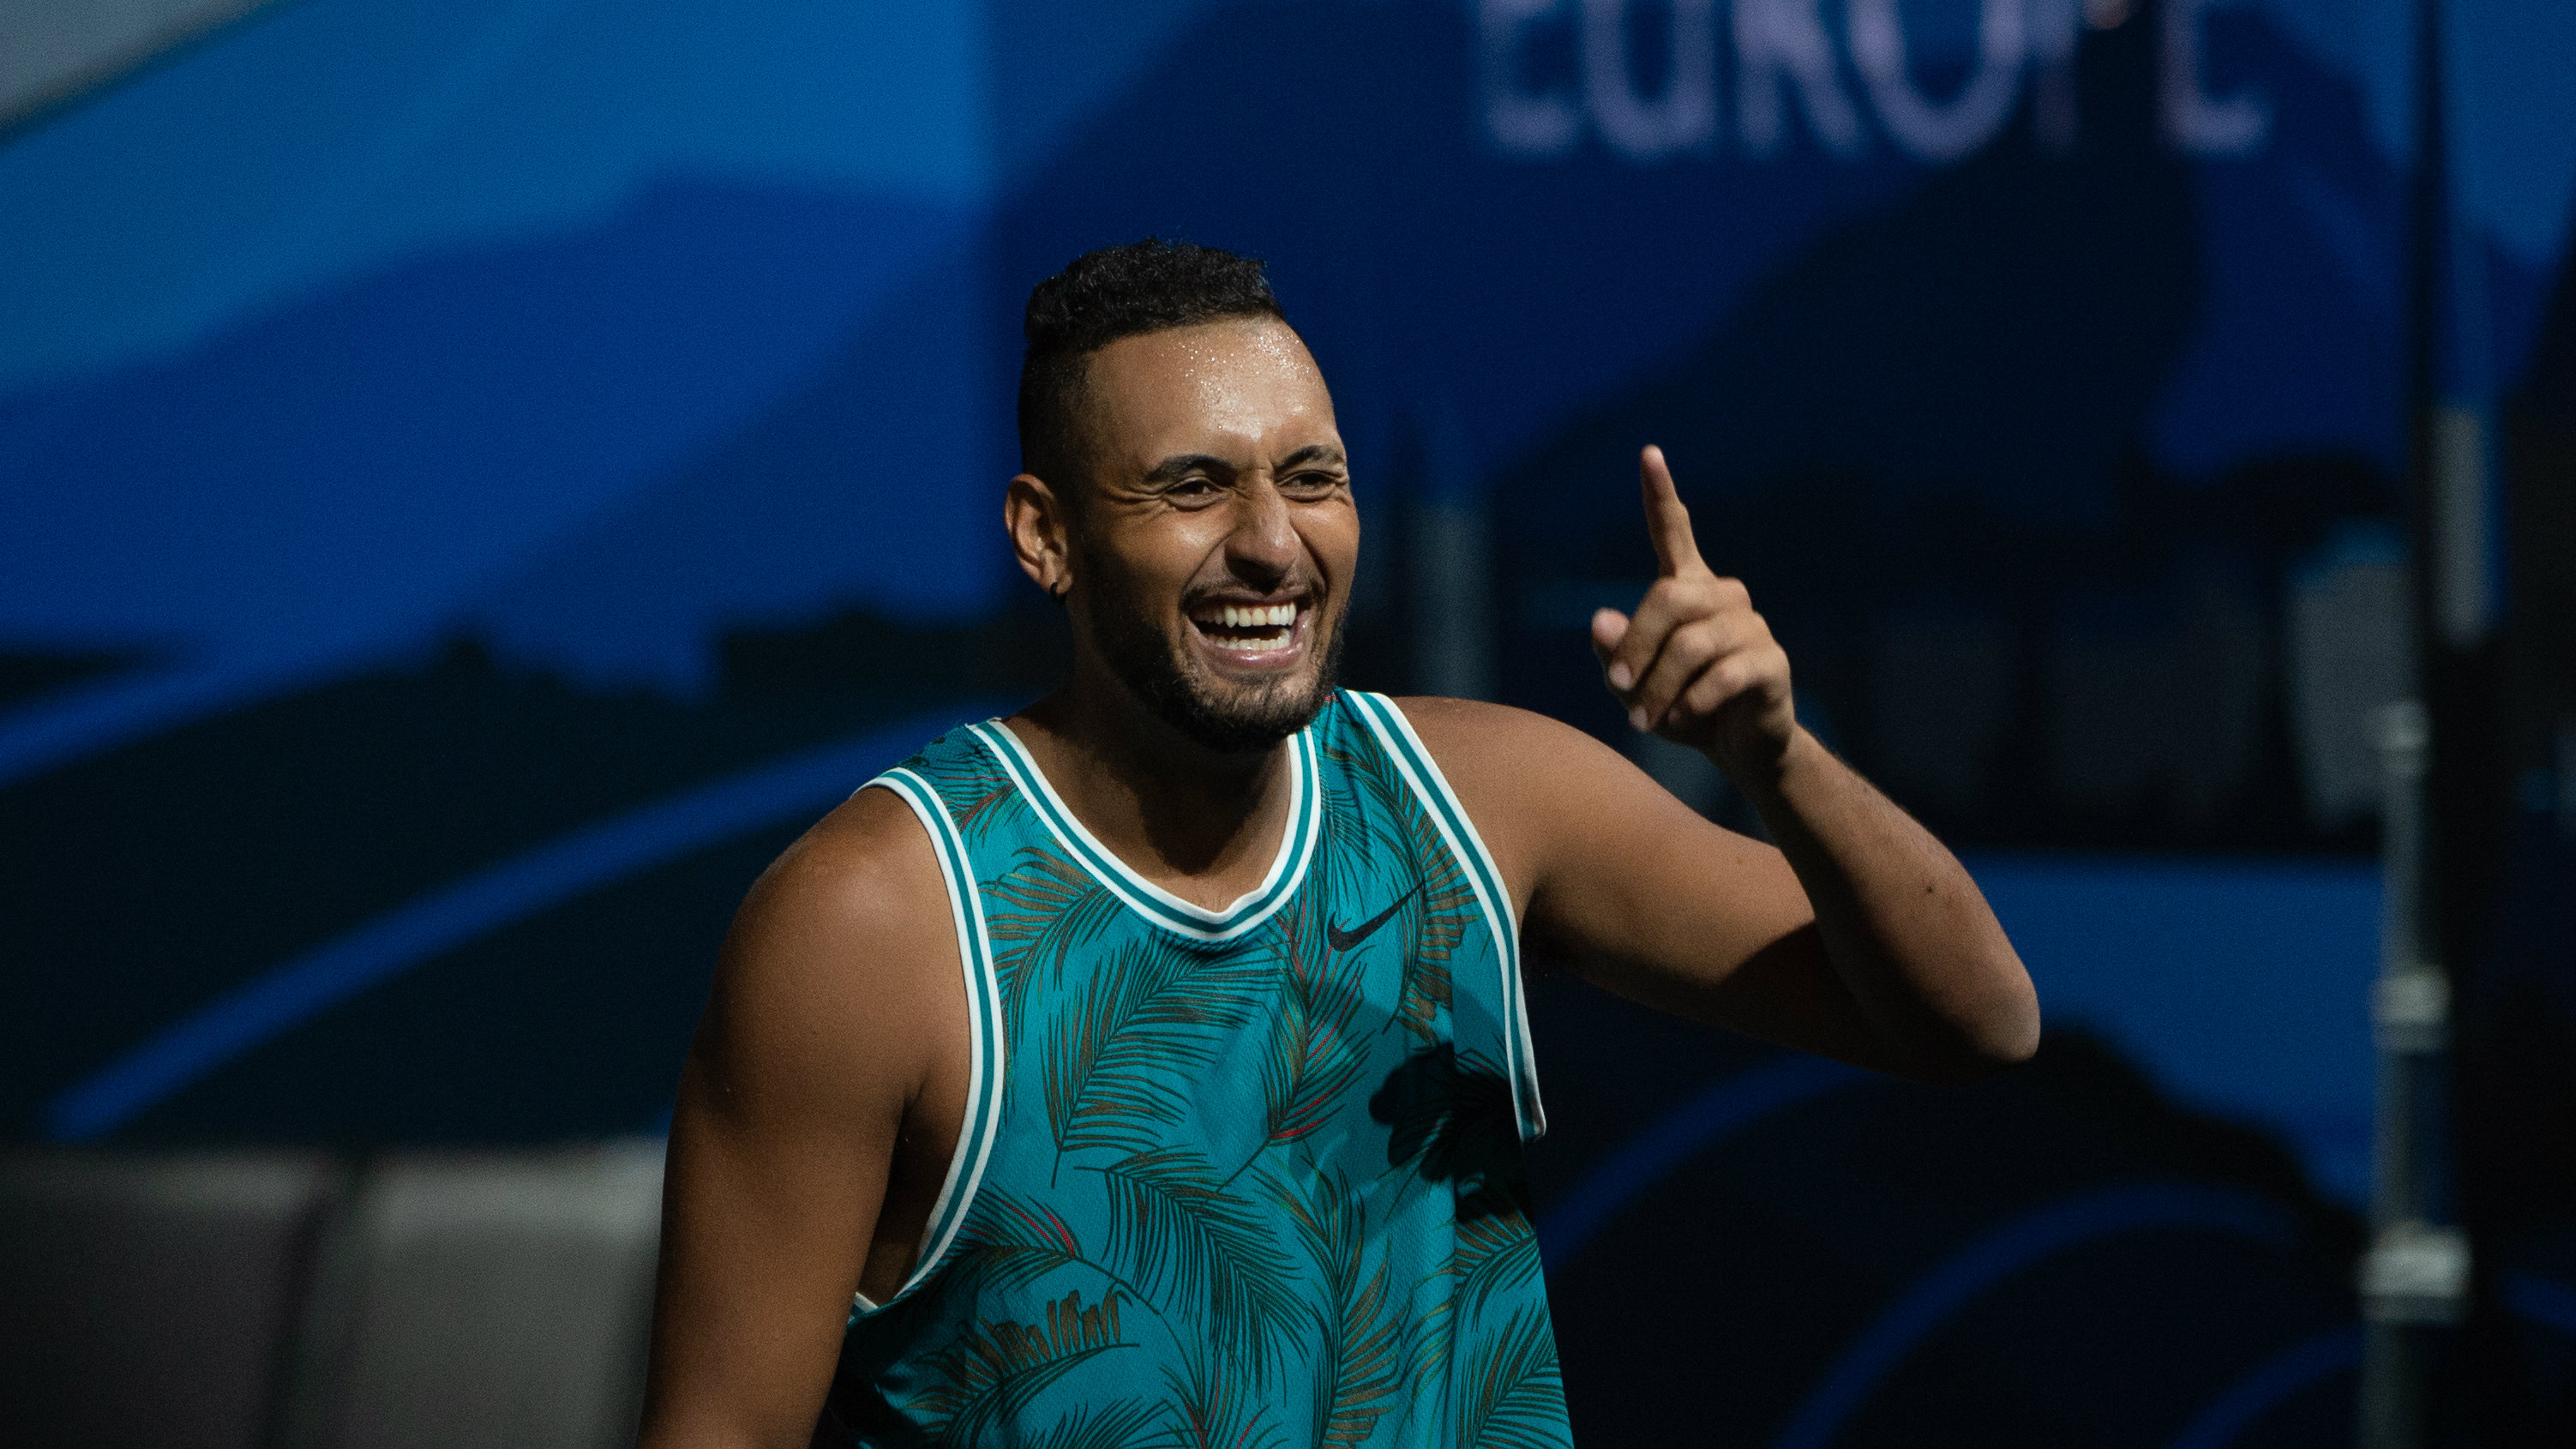 Australian tennis star Nick Kyrgios responds following Pat Rafter's suspension claims